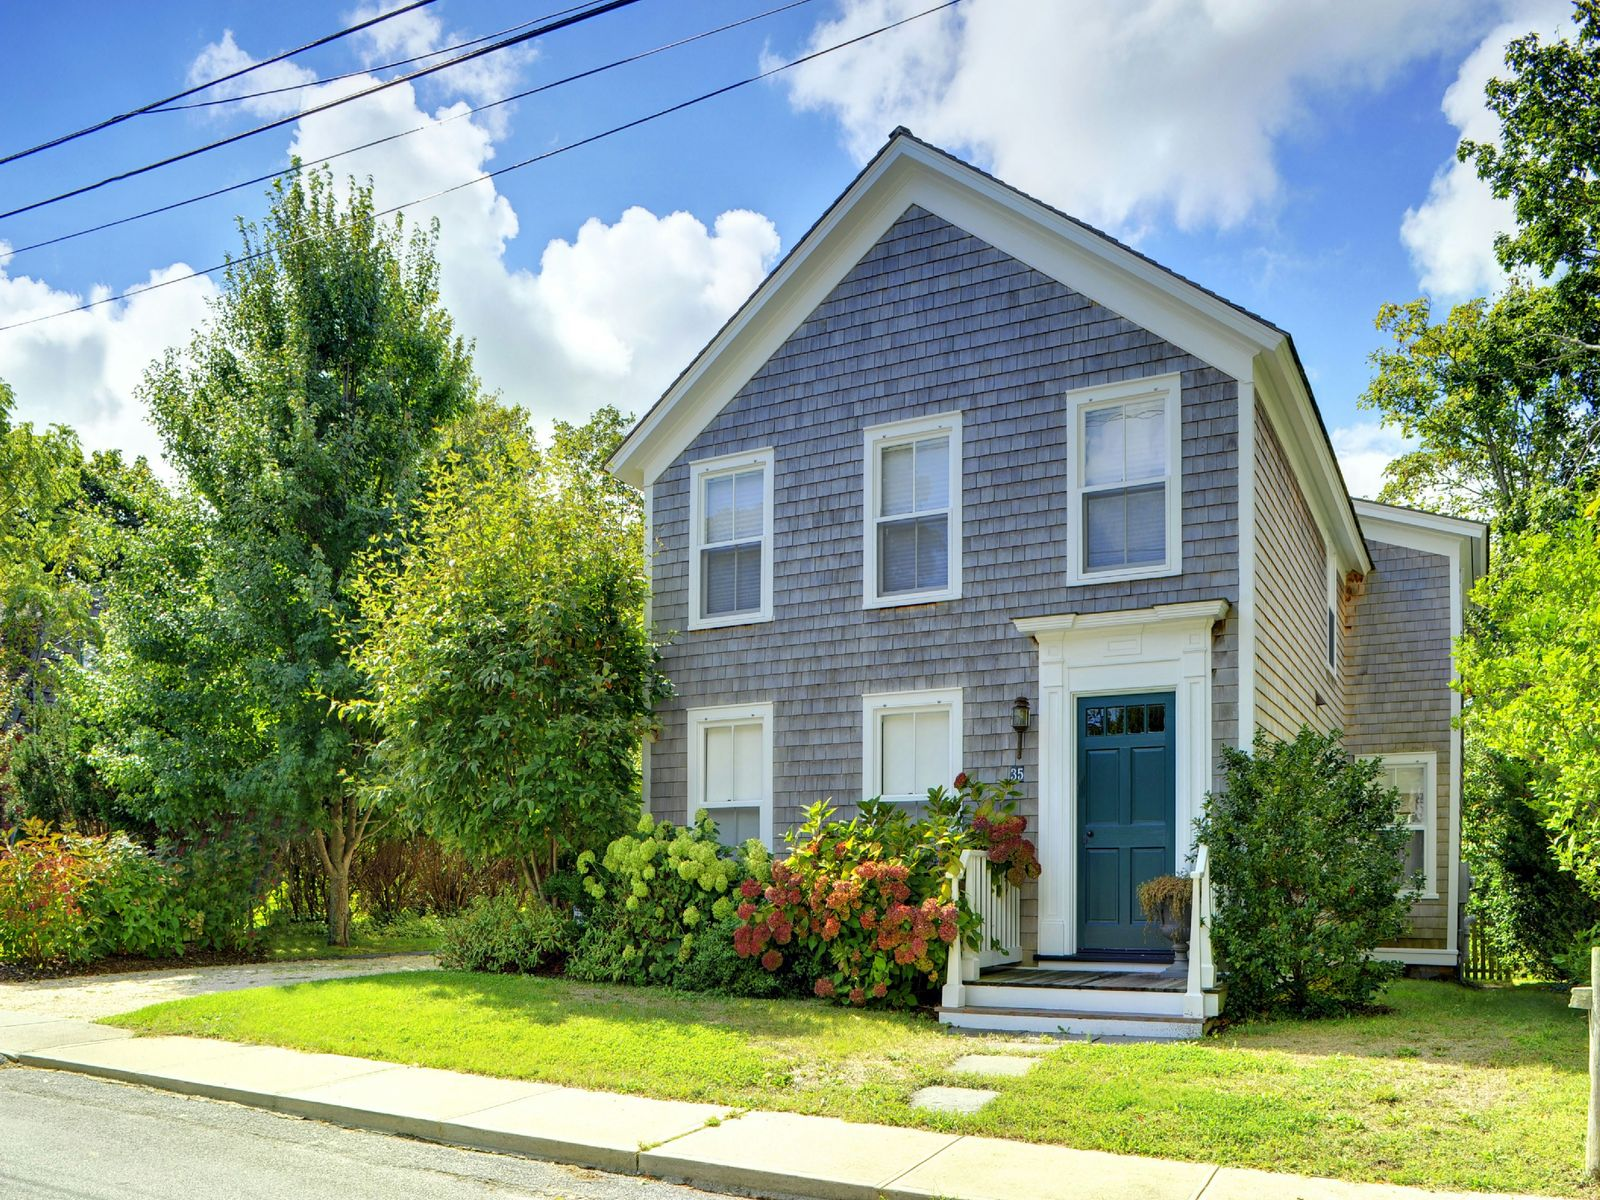 Sag Harbor Village Perfection, Sag Harbor NY Single Family Home - Hamptons Real Estate